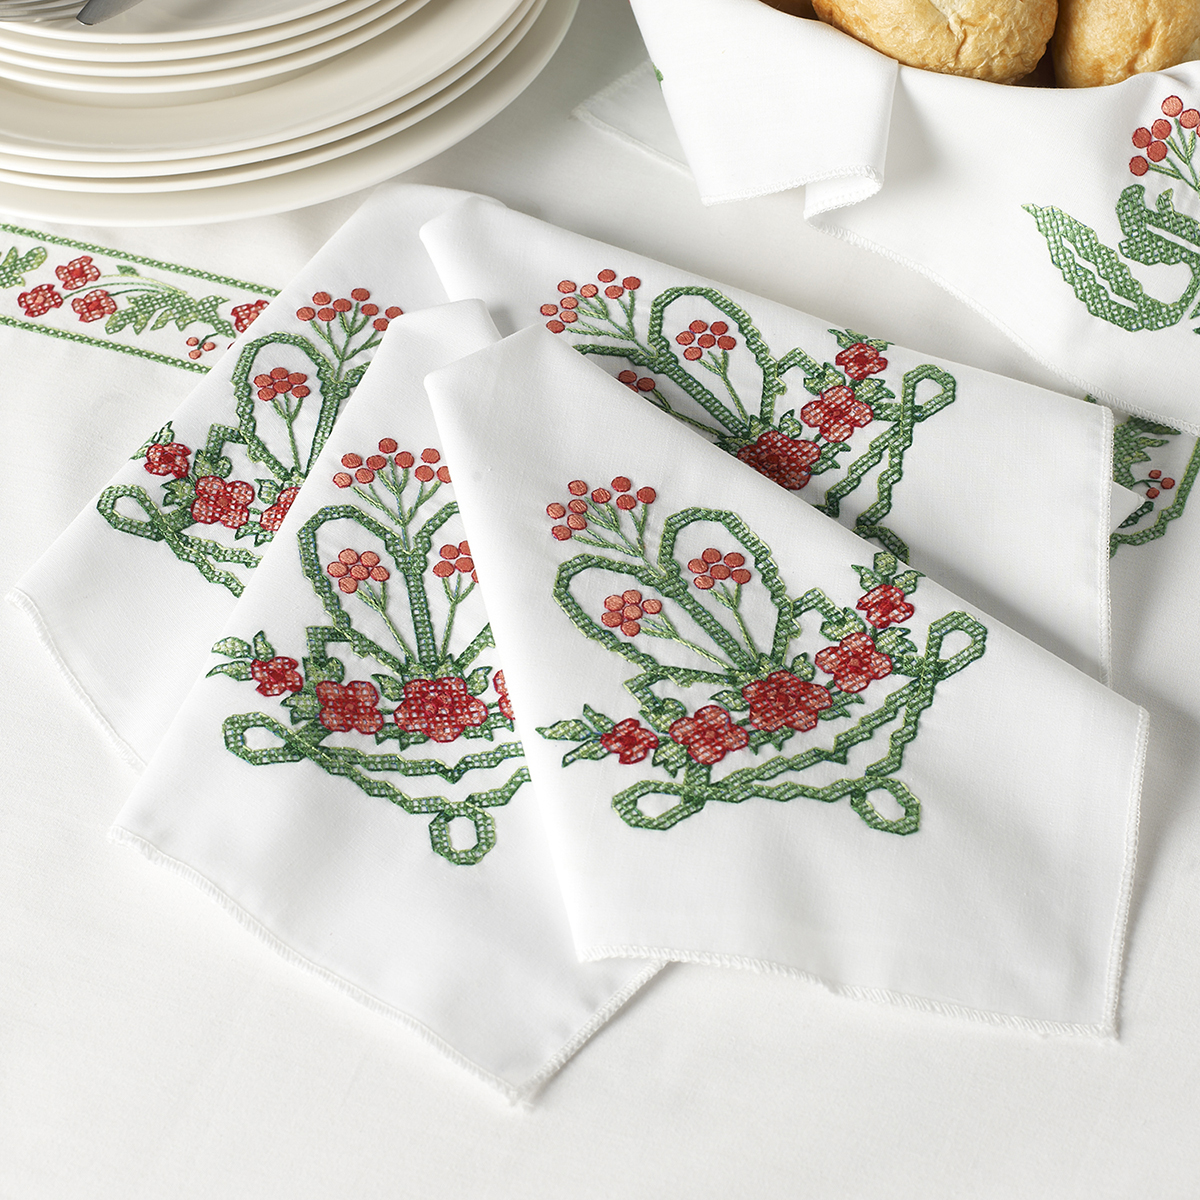 "Stamped Cross Stitch Napkins 16""X16"" Set Of 4-Victorian Frieze"